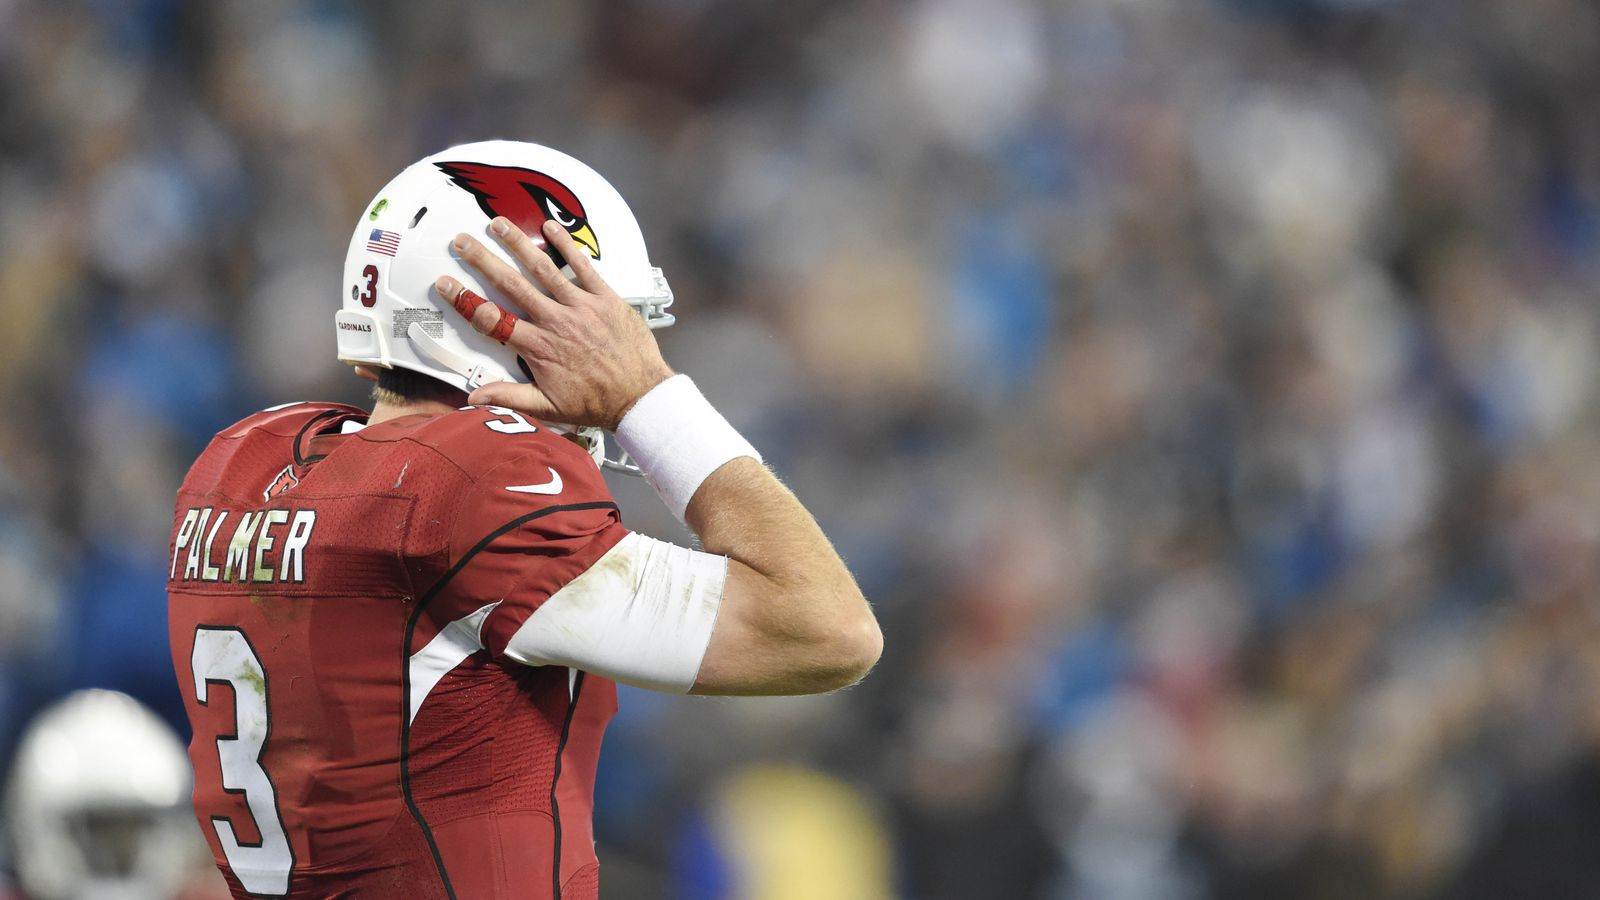 cardinals vs panthers box score nfl odds and lines